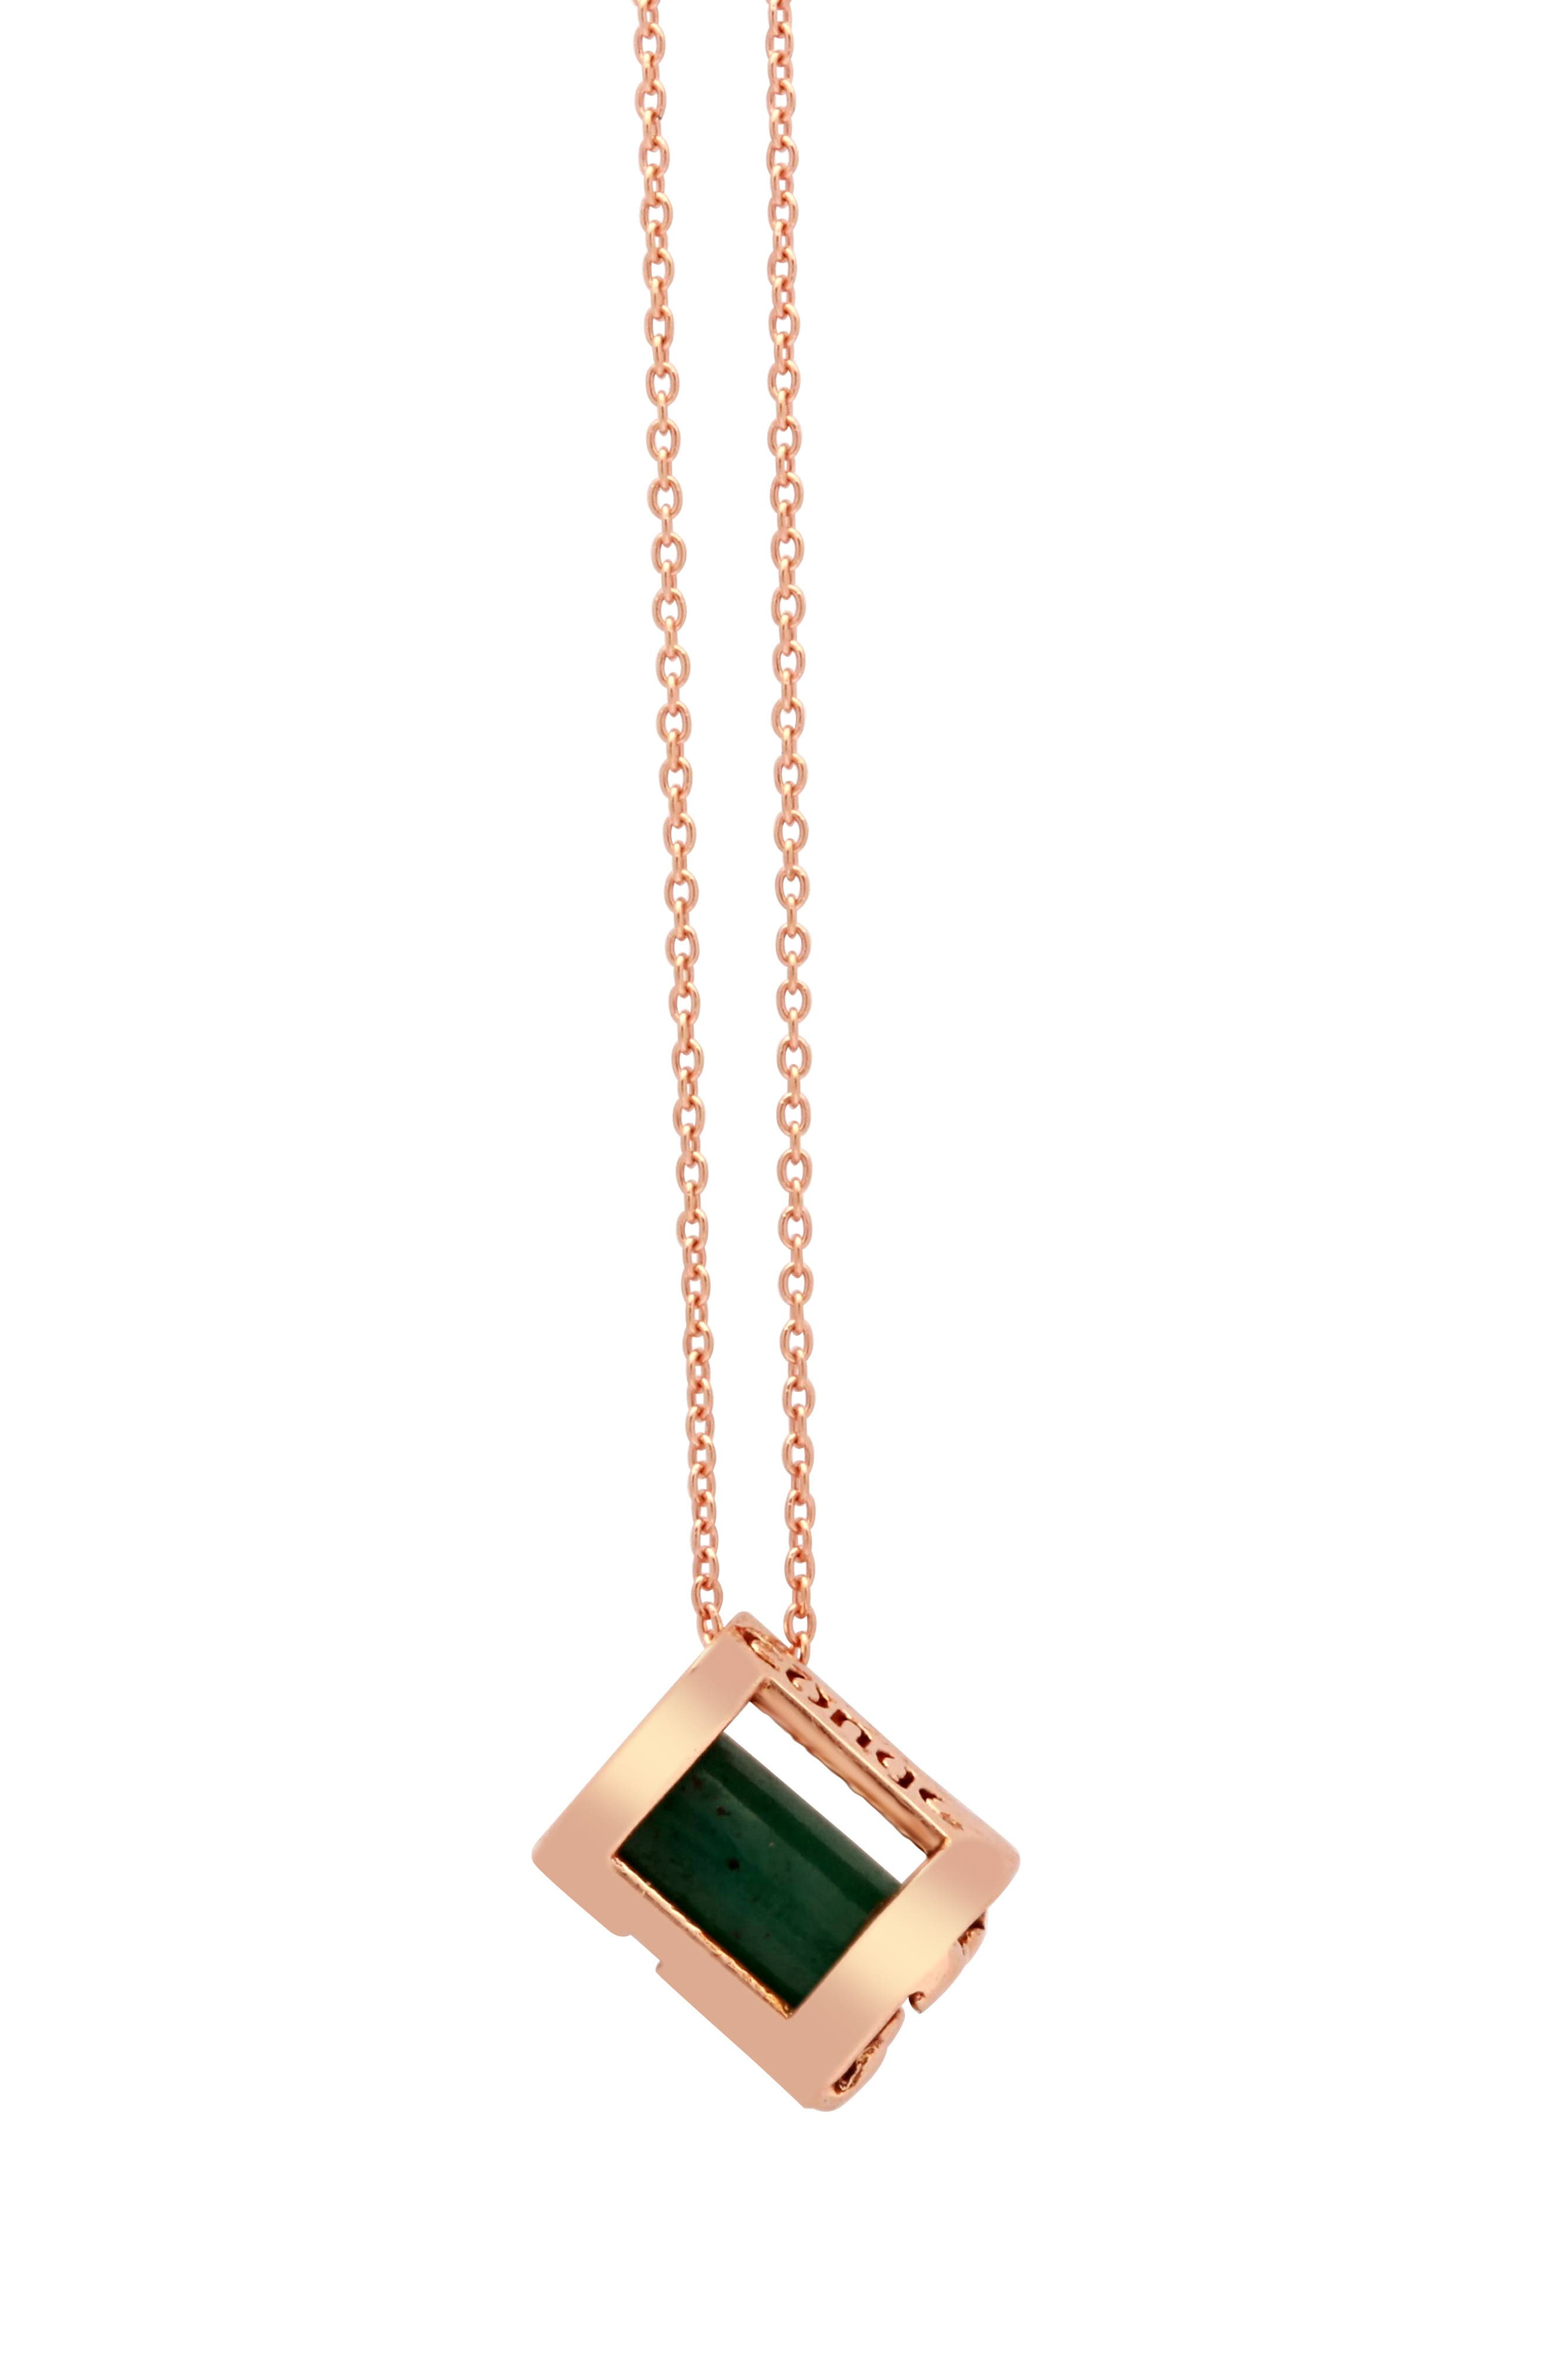 Optimism & Luck Aventurine Initial Barrel Initial Necklace,                             Alternate thumbnail 4, color,                             ROSE GOLD-A